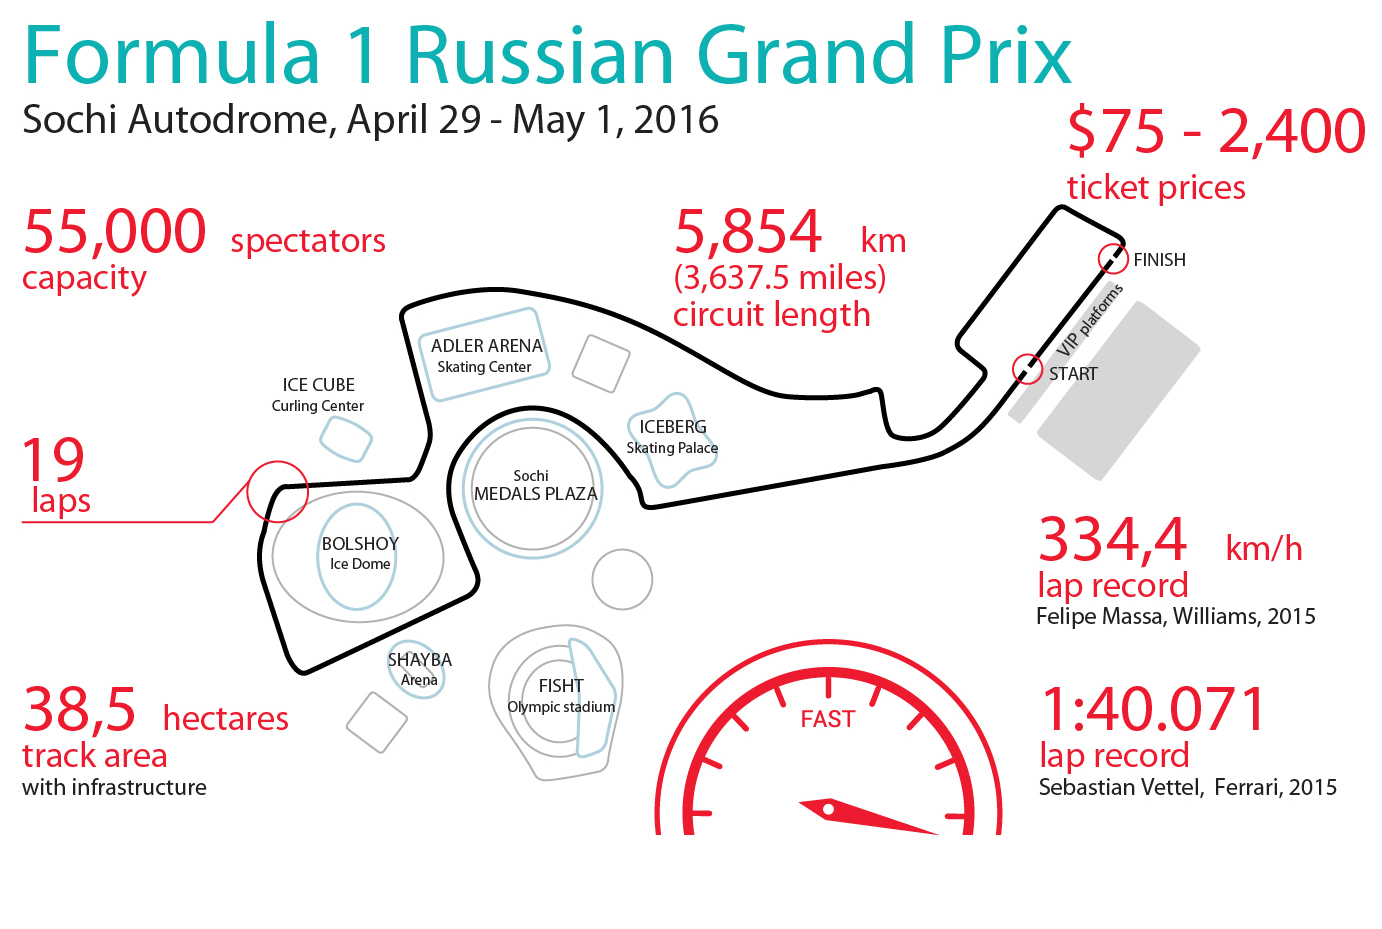 Read more: 4 things you didn't know about Russia's Formula 1 Grand Prix>>>